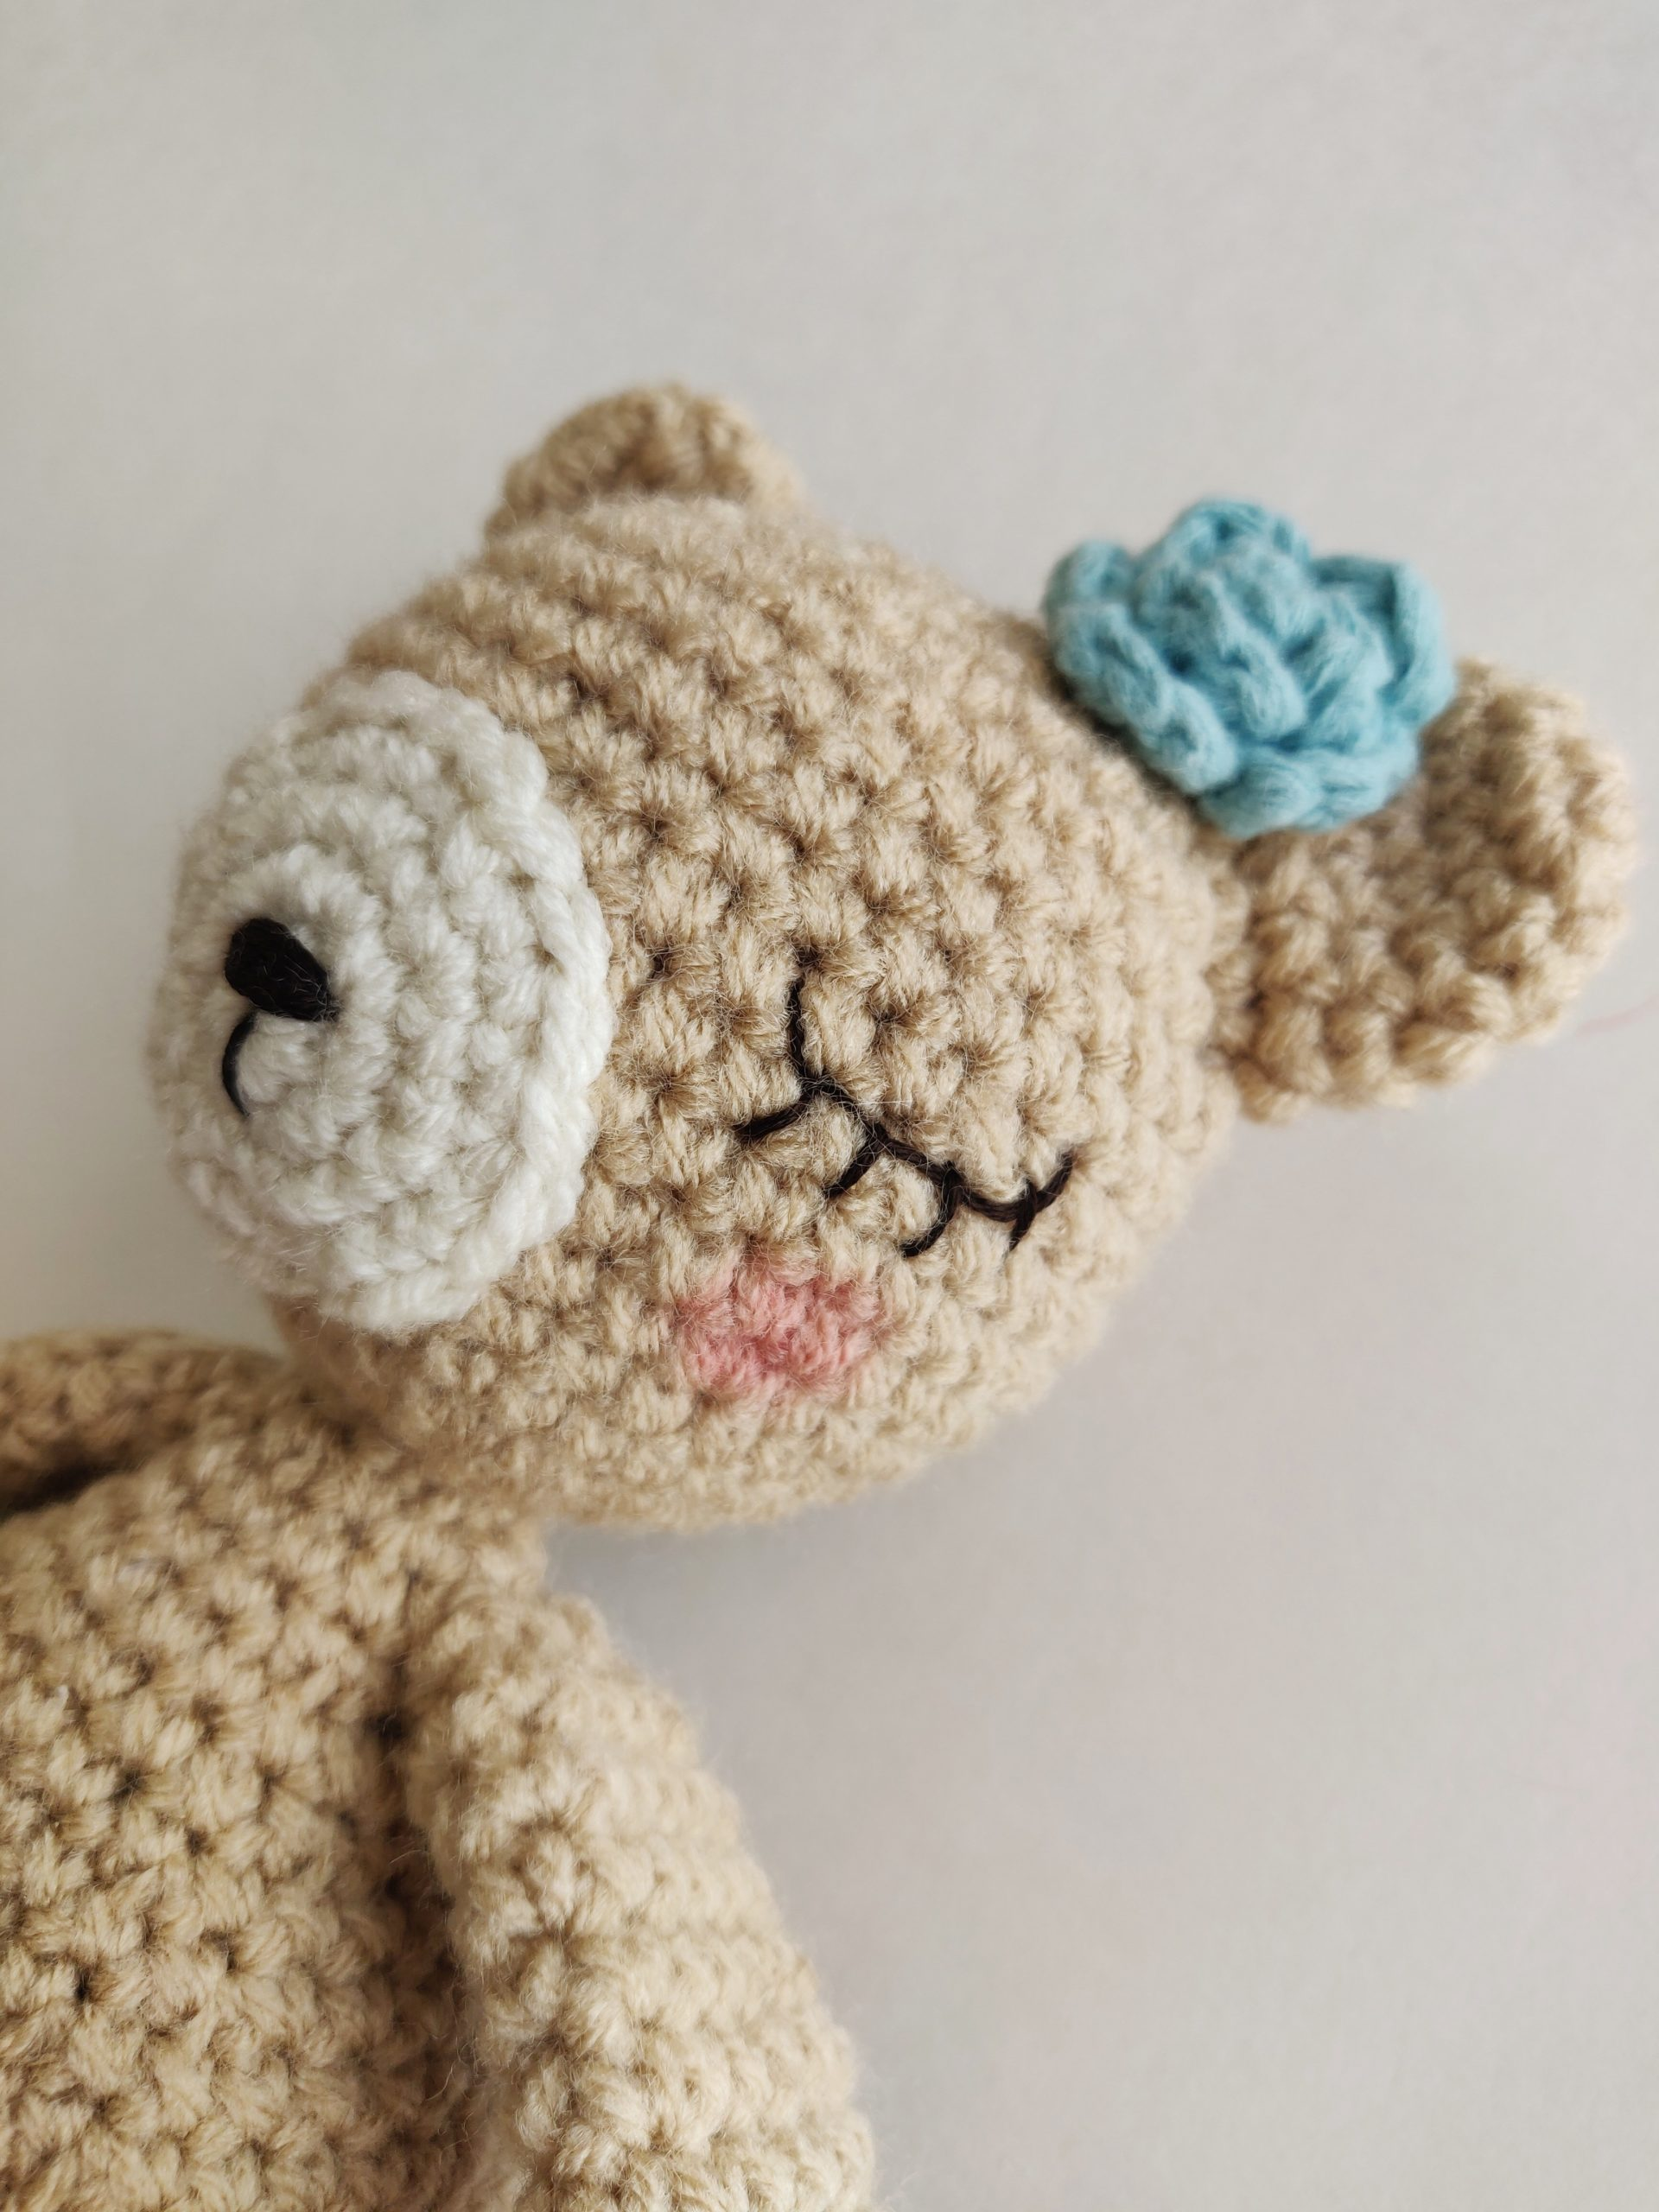 Sleepy eyed brown crochet bear and blue rose on ear.